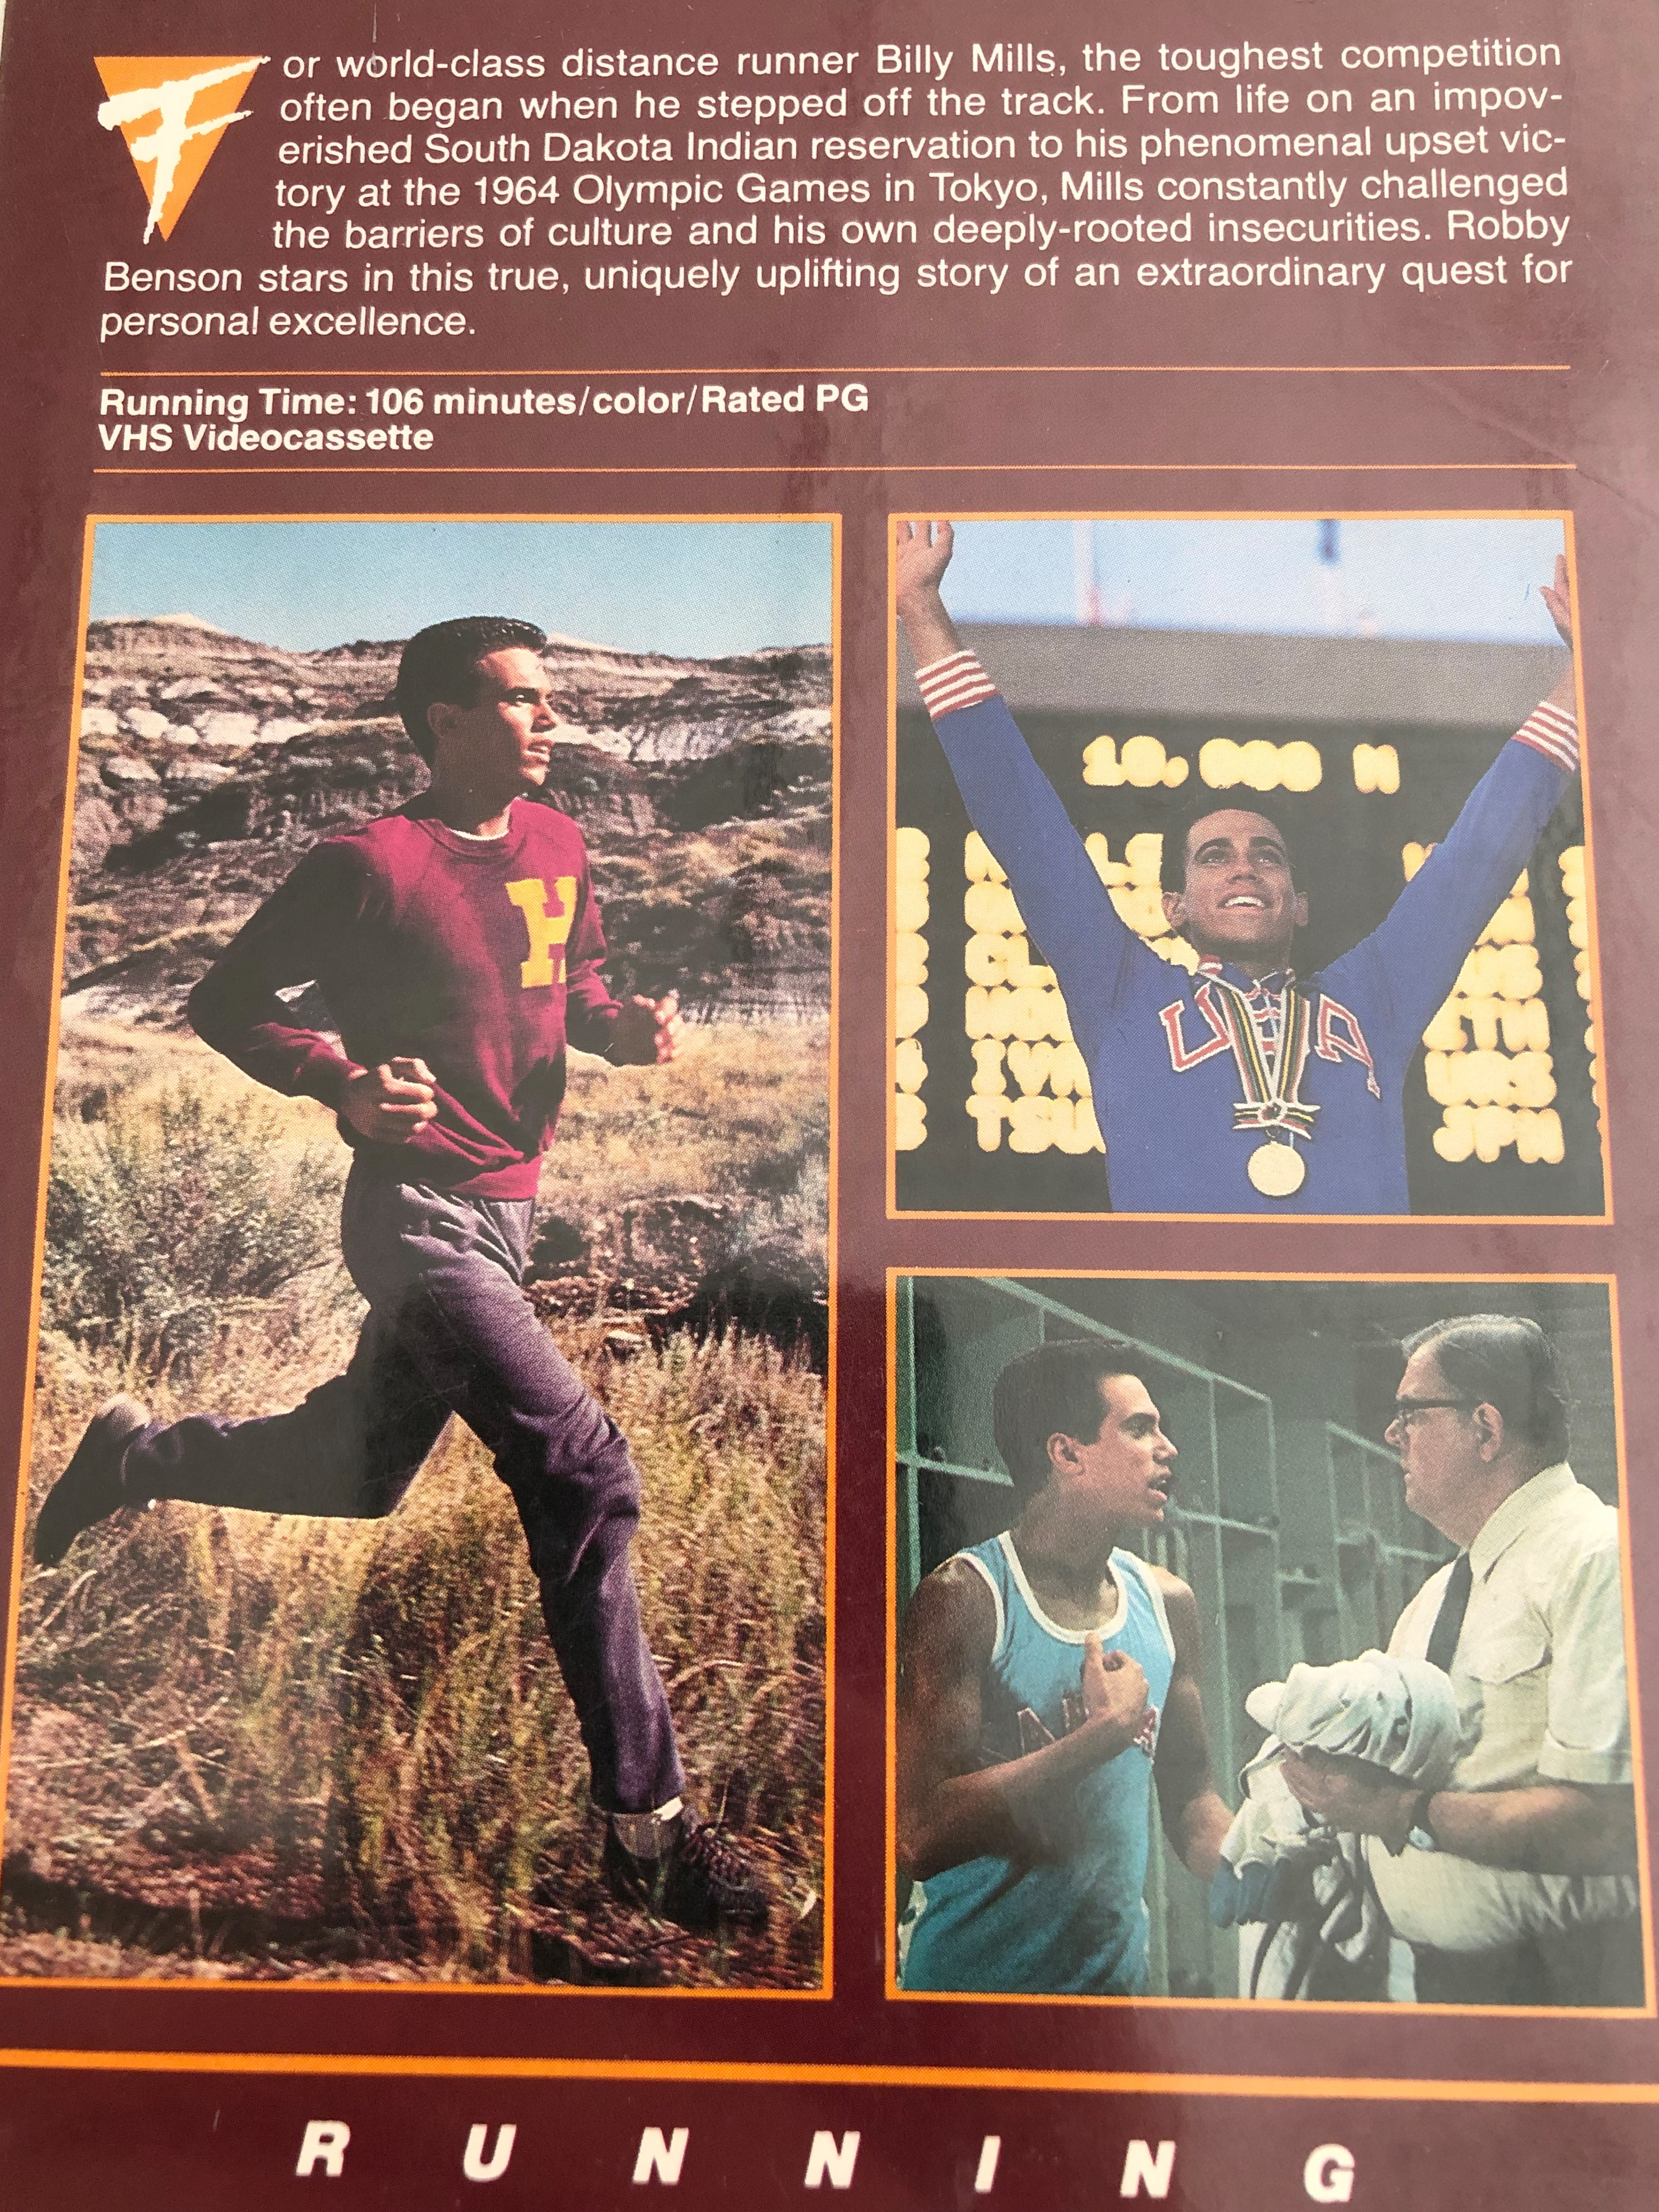 robby-benson-running-brave-vhs-1983-directed-by-d.-s.-everett-starring-robby-benson-pat-hingle-claudia-cron-jeff-mccracken-ntsc-color-the-story-of-billy-mills-world-class-distance-runner-6-.jpg